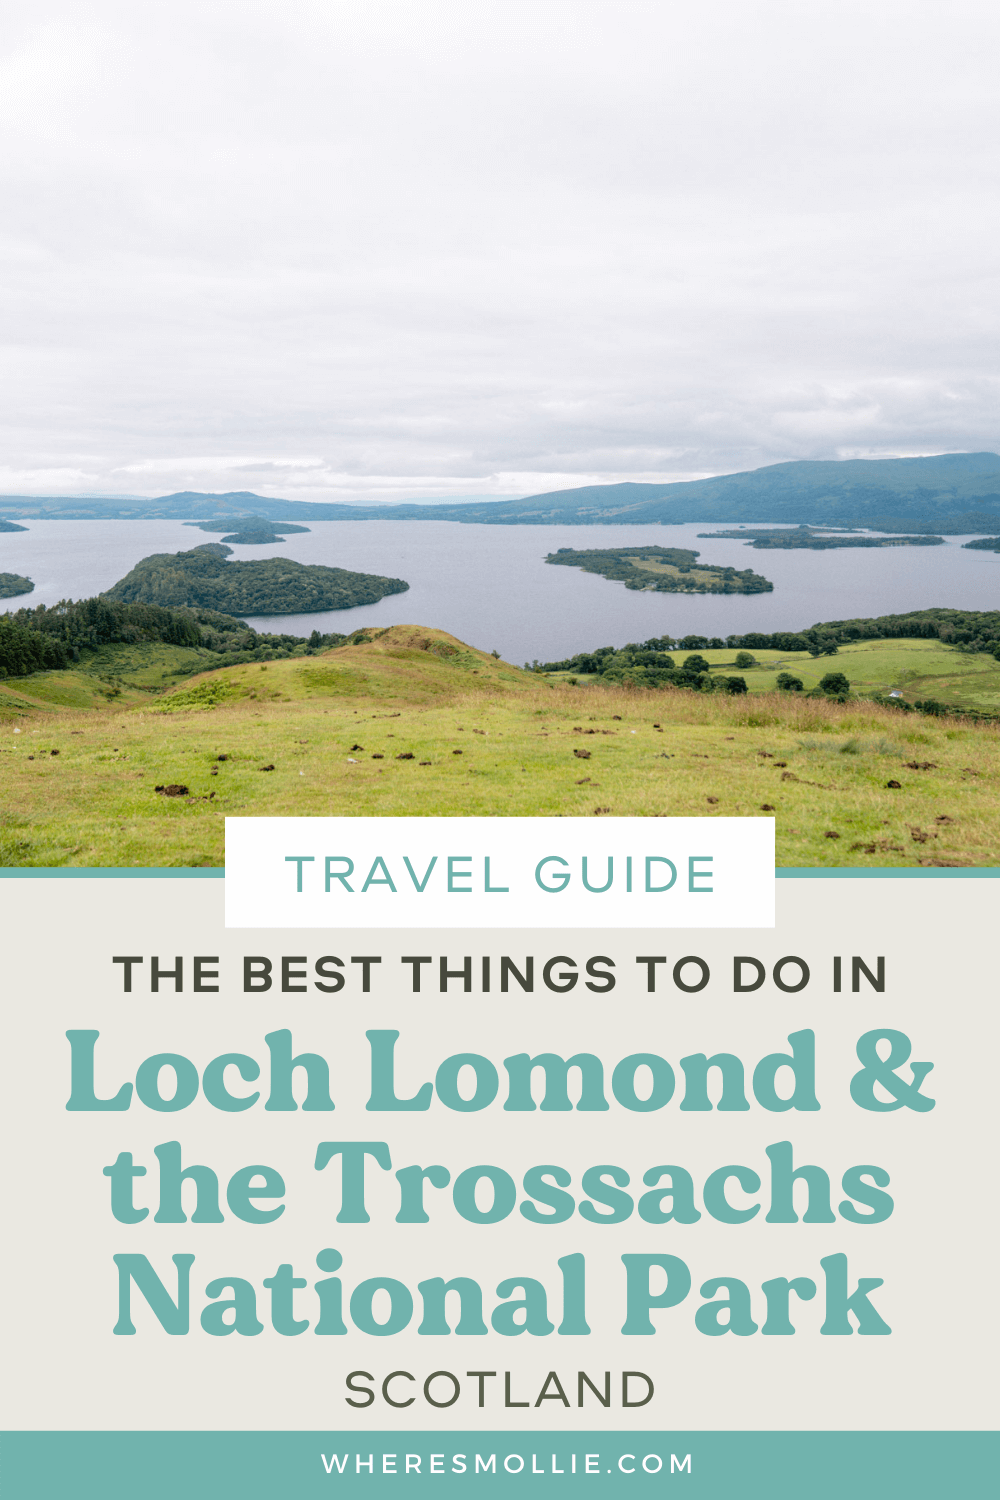 A complete guide to Loch Lomond and the Trossachs National Park, Scotland